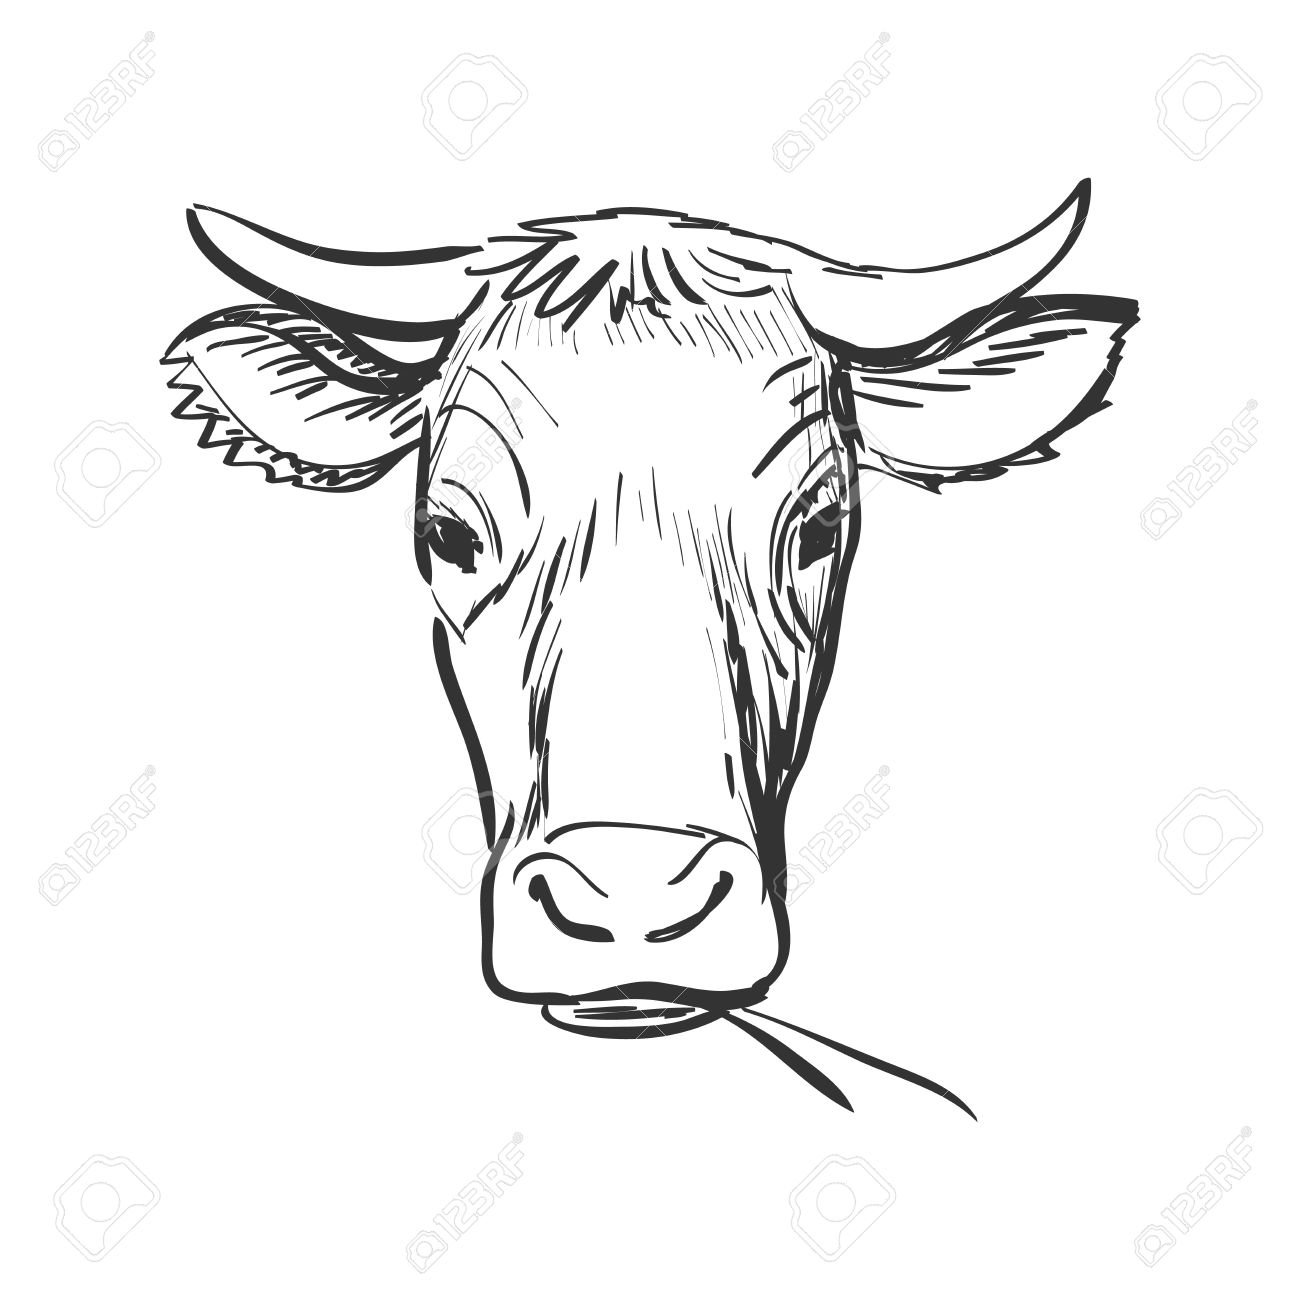 doodle cow, Cow skull sketch. Isolated in white background. Excellent vector illustration, EPS 10 - 46478958